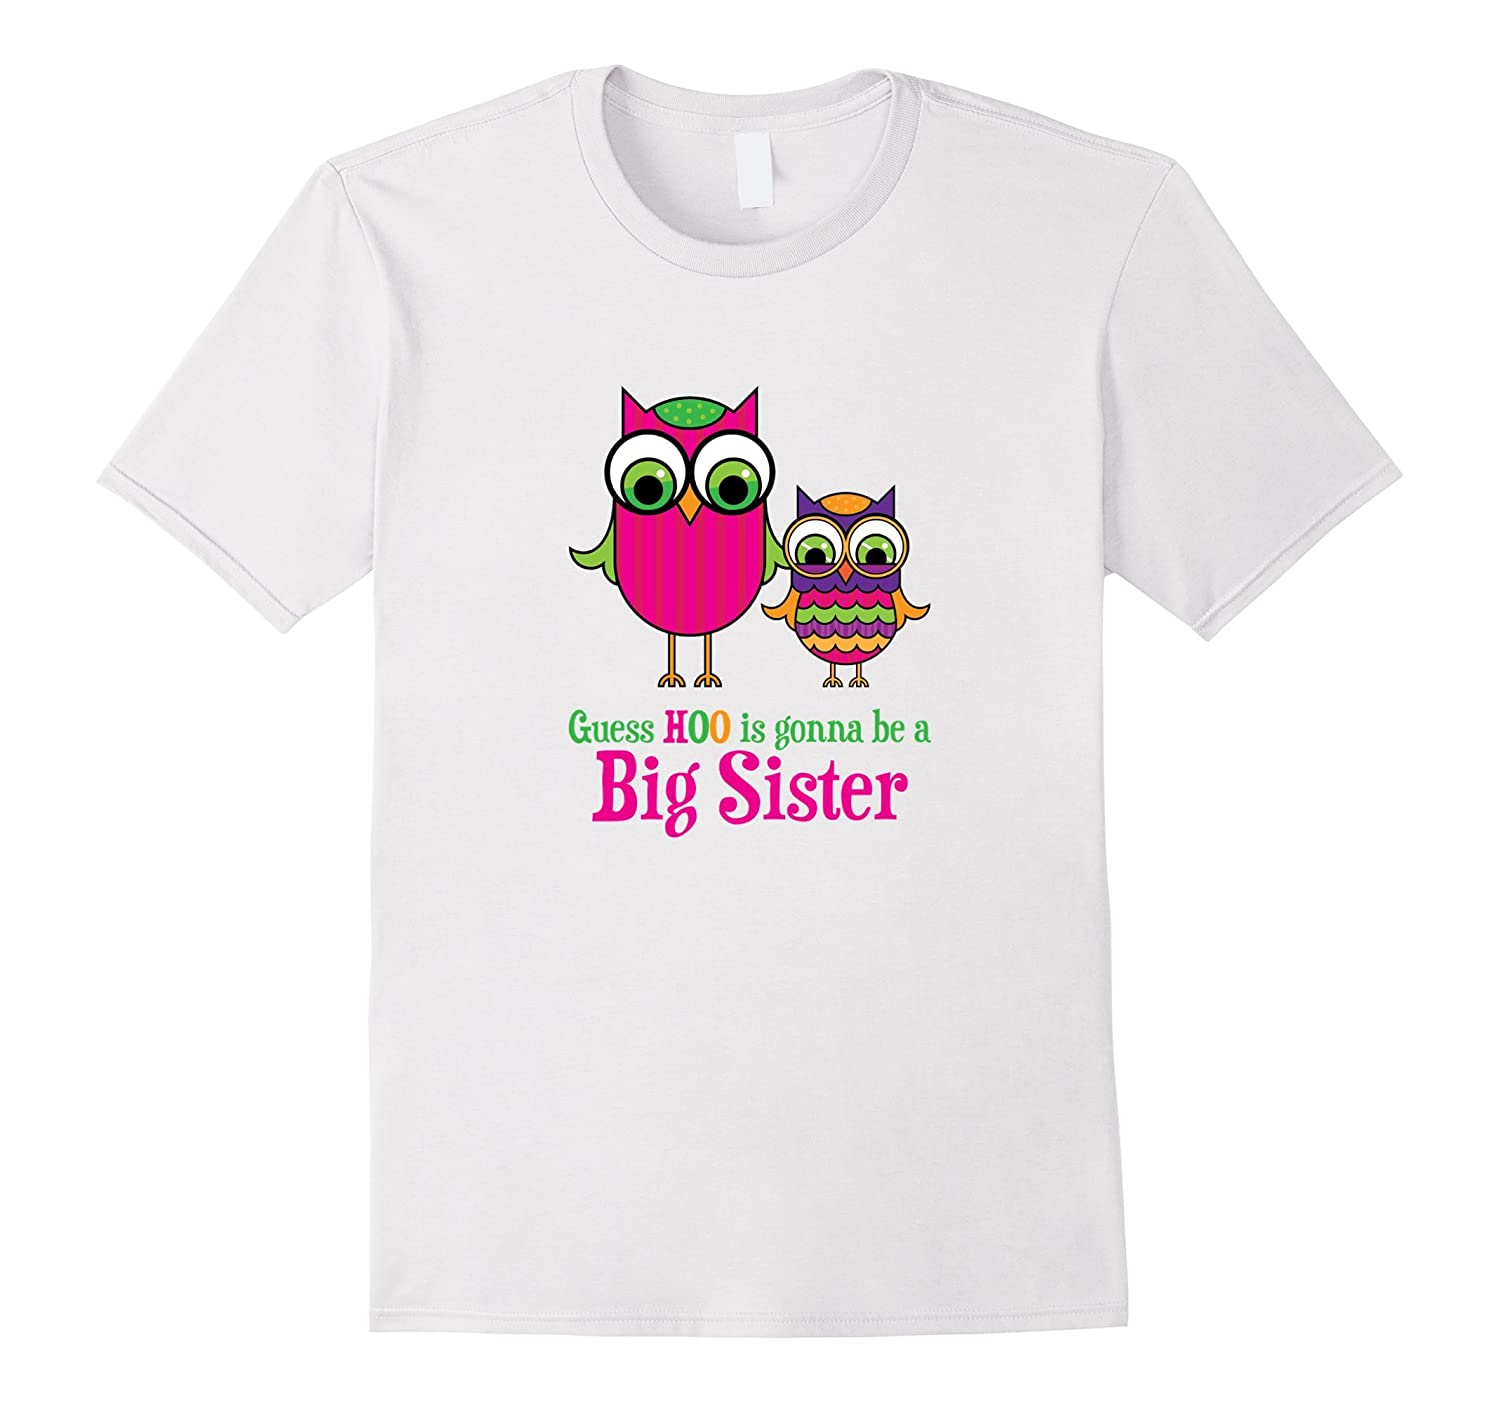 Guess Hoo Is Gonna Be Big Sister T Shirt Owls Goatstee